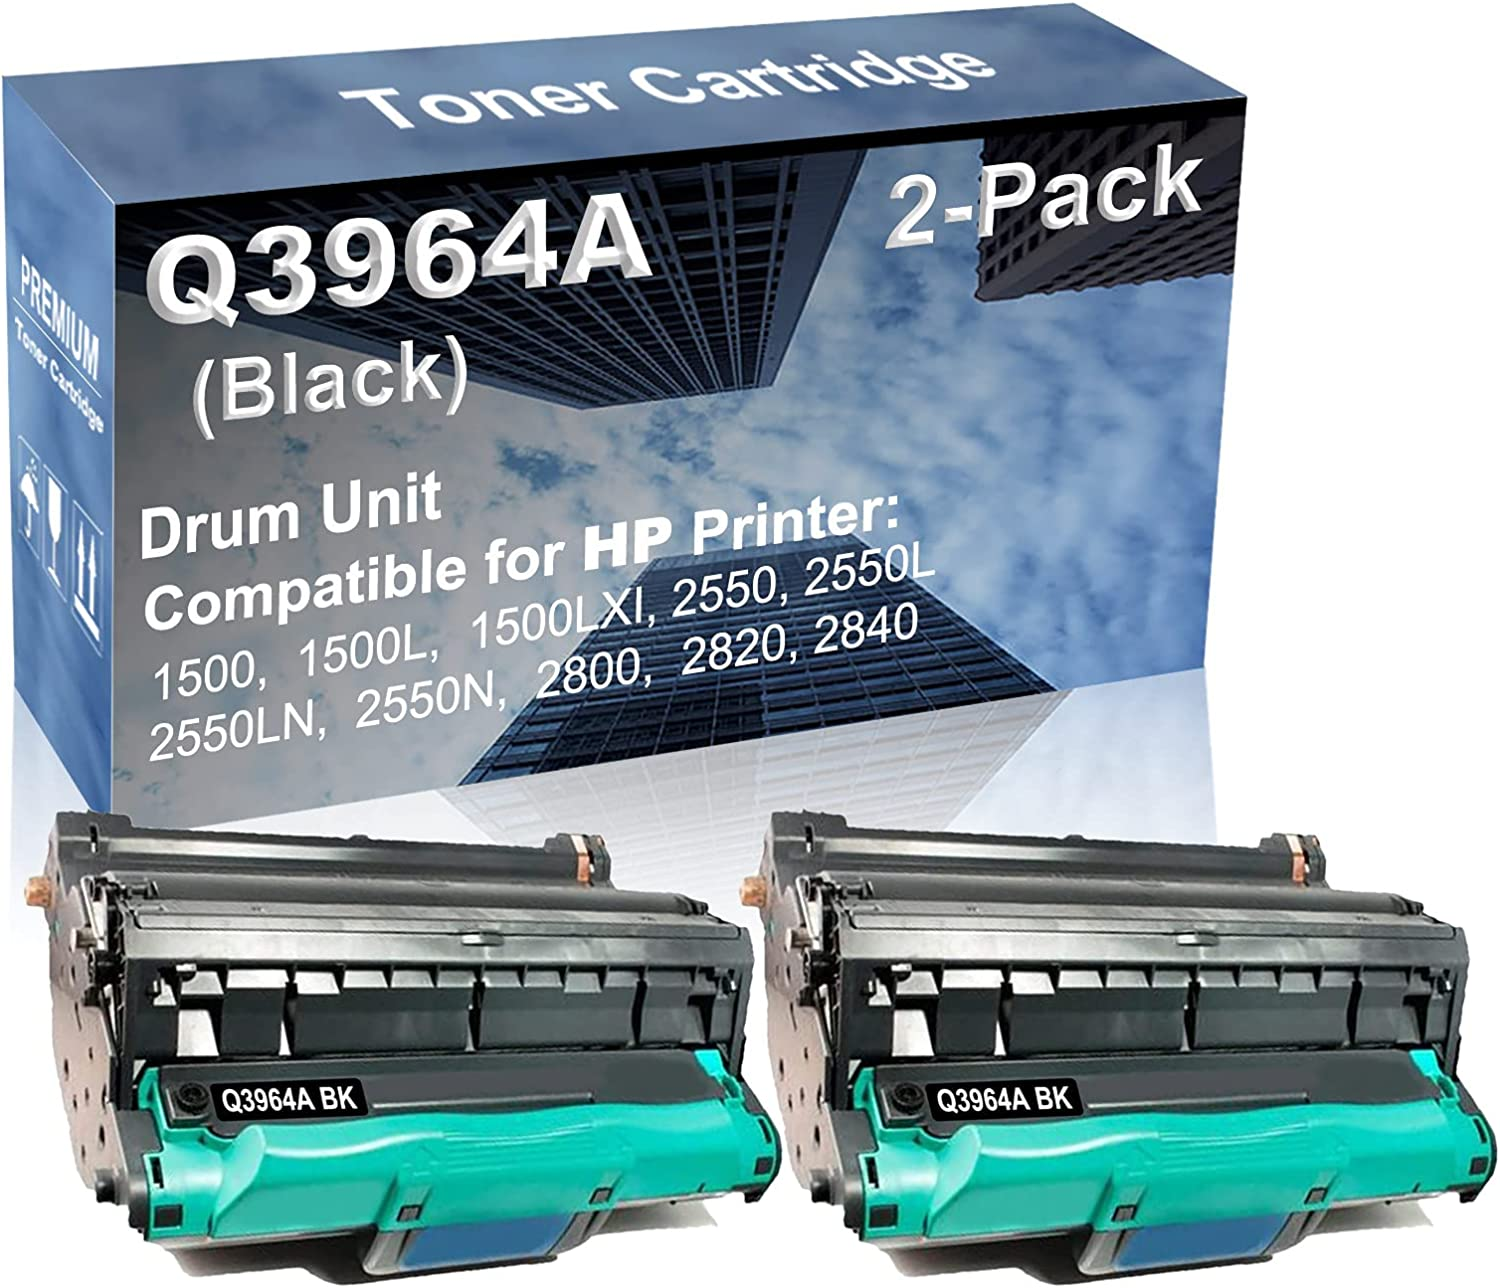 2-Pack Compatible Drum Unit Black latest Q3964A Dr HP for Free shipping Replacement